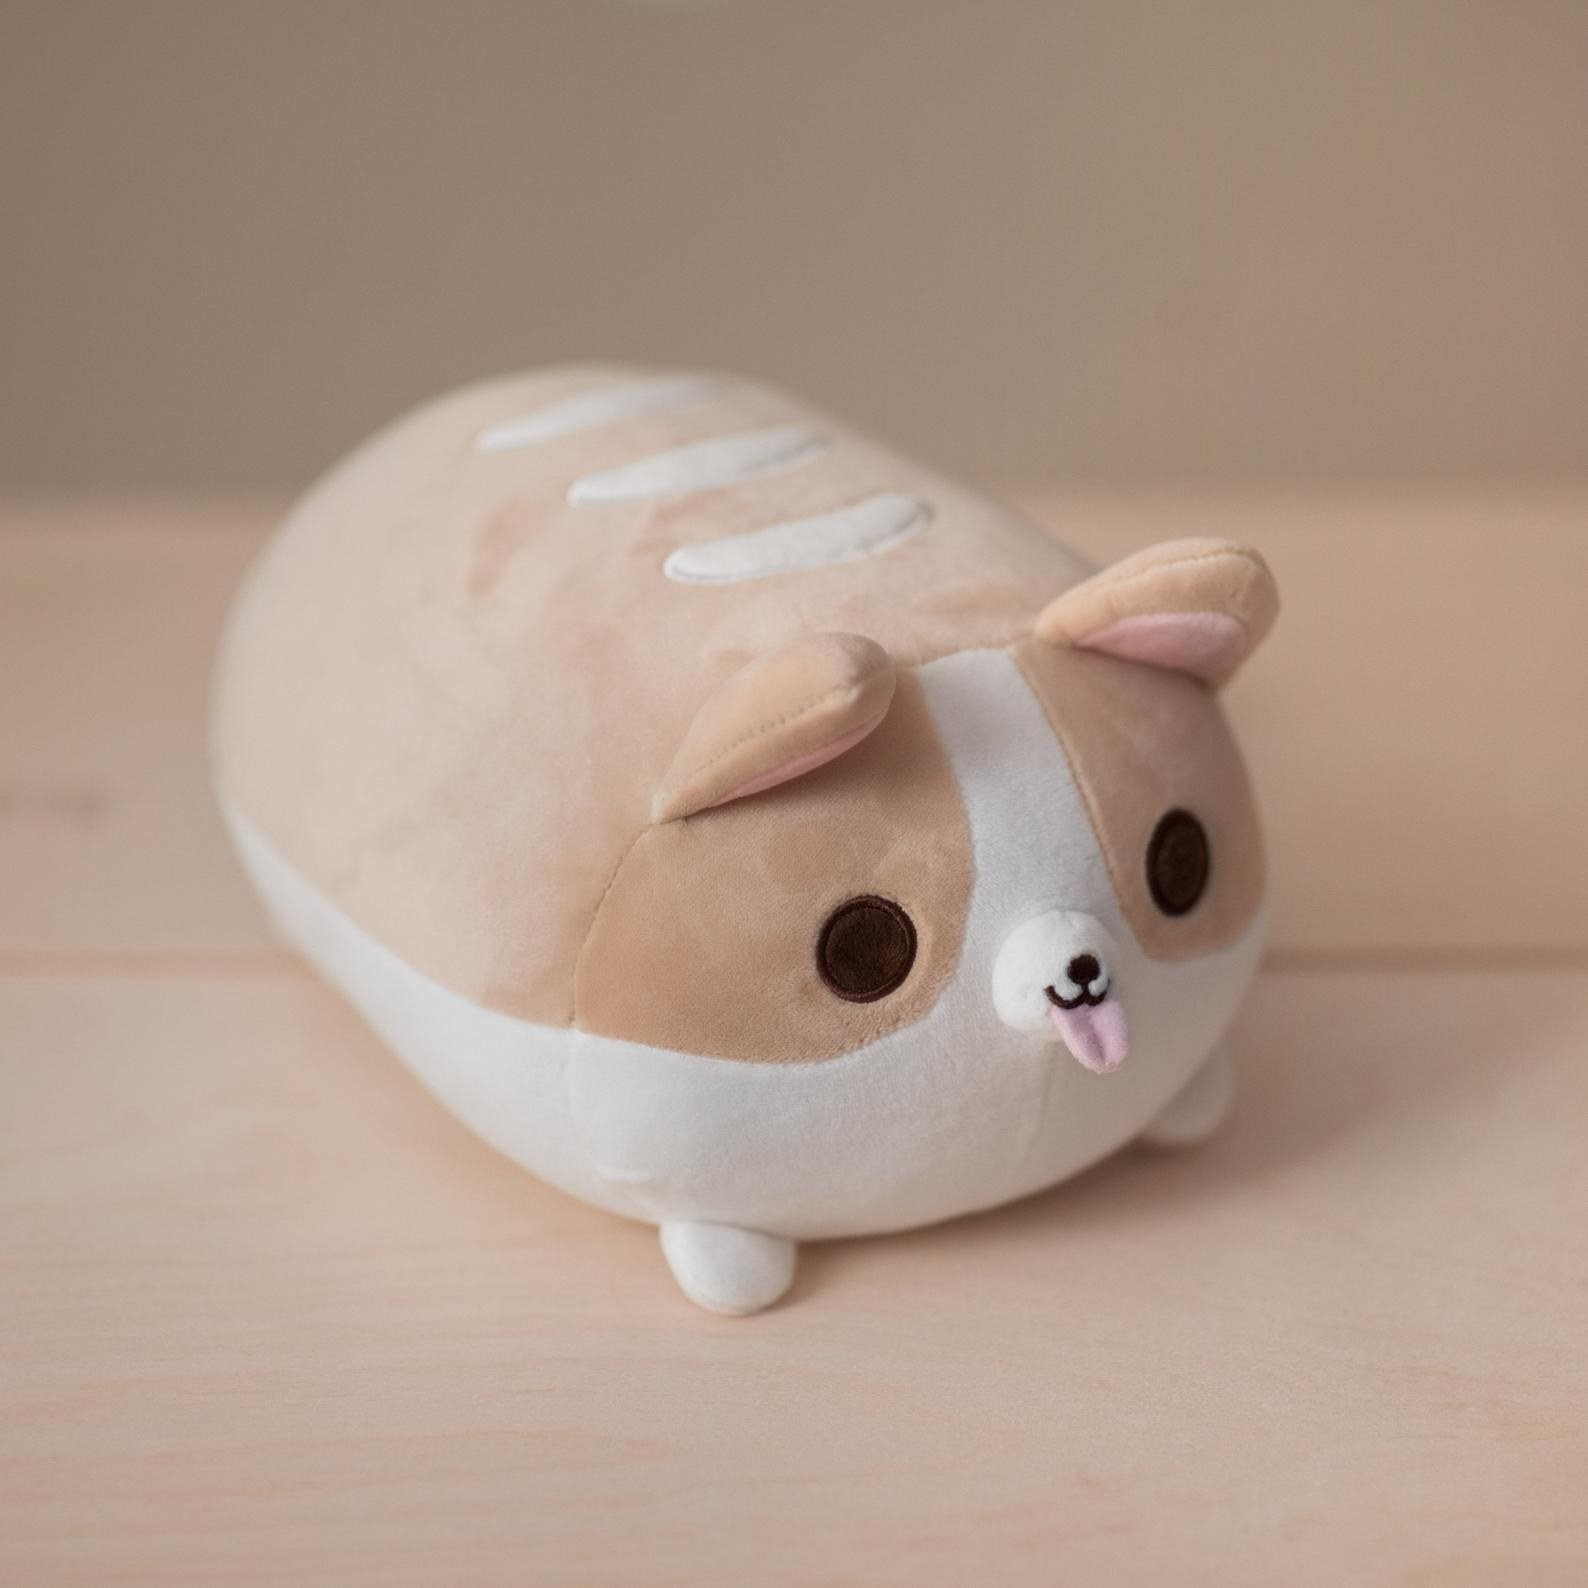 A plush corgi in the shape of a bread loaf